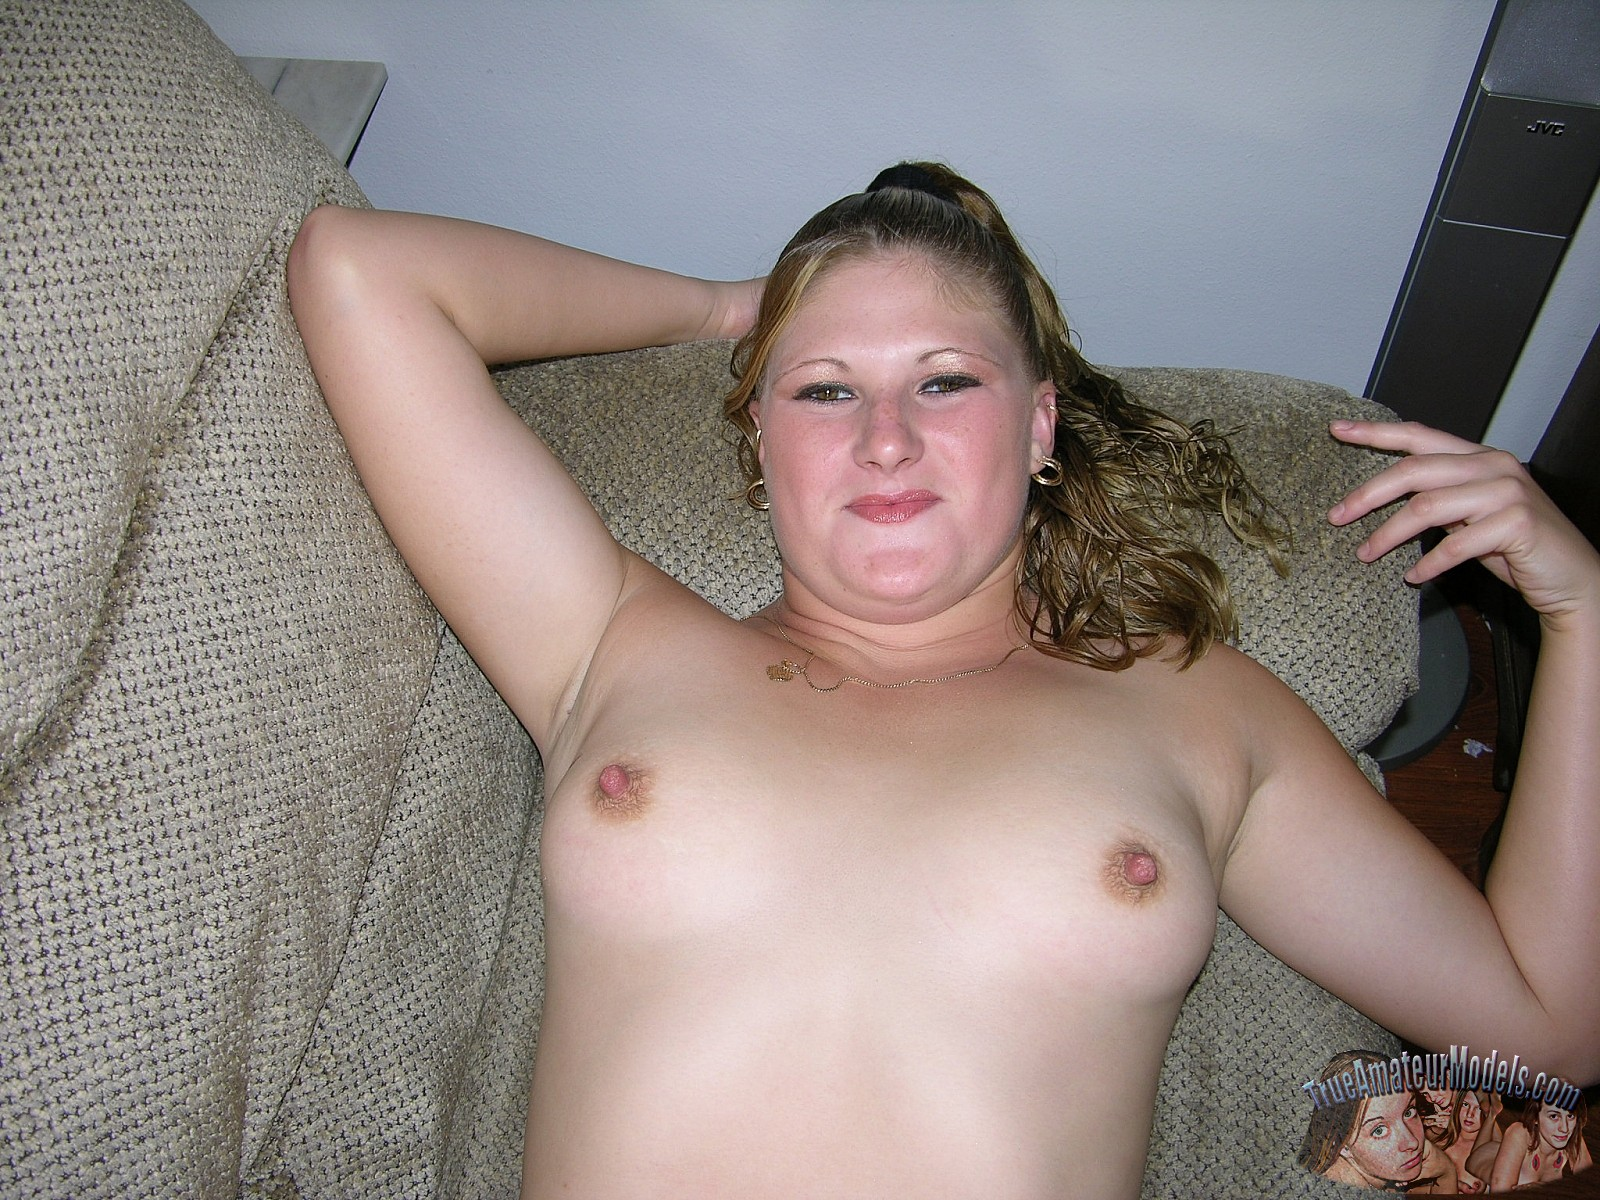 Redneck hillbilly woman nude